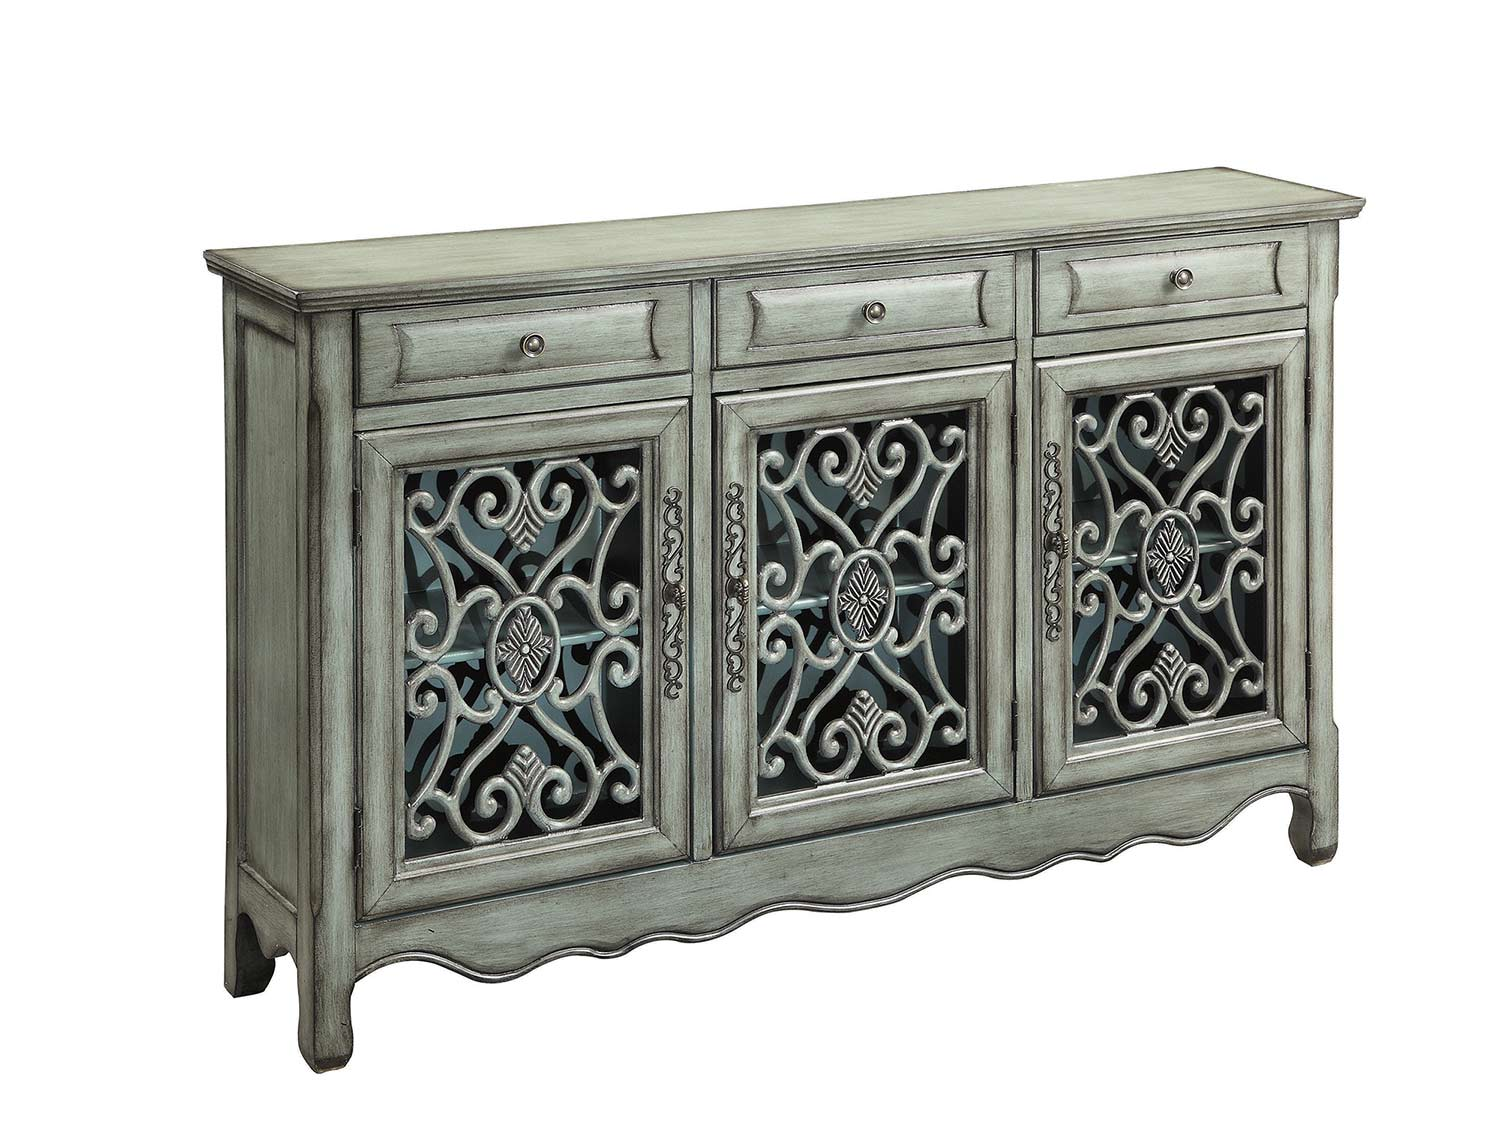 Coaster 950357 Accent Cabinet - Antique Green